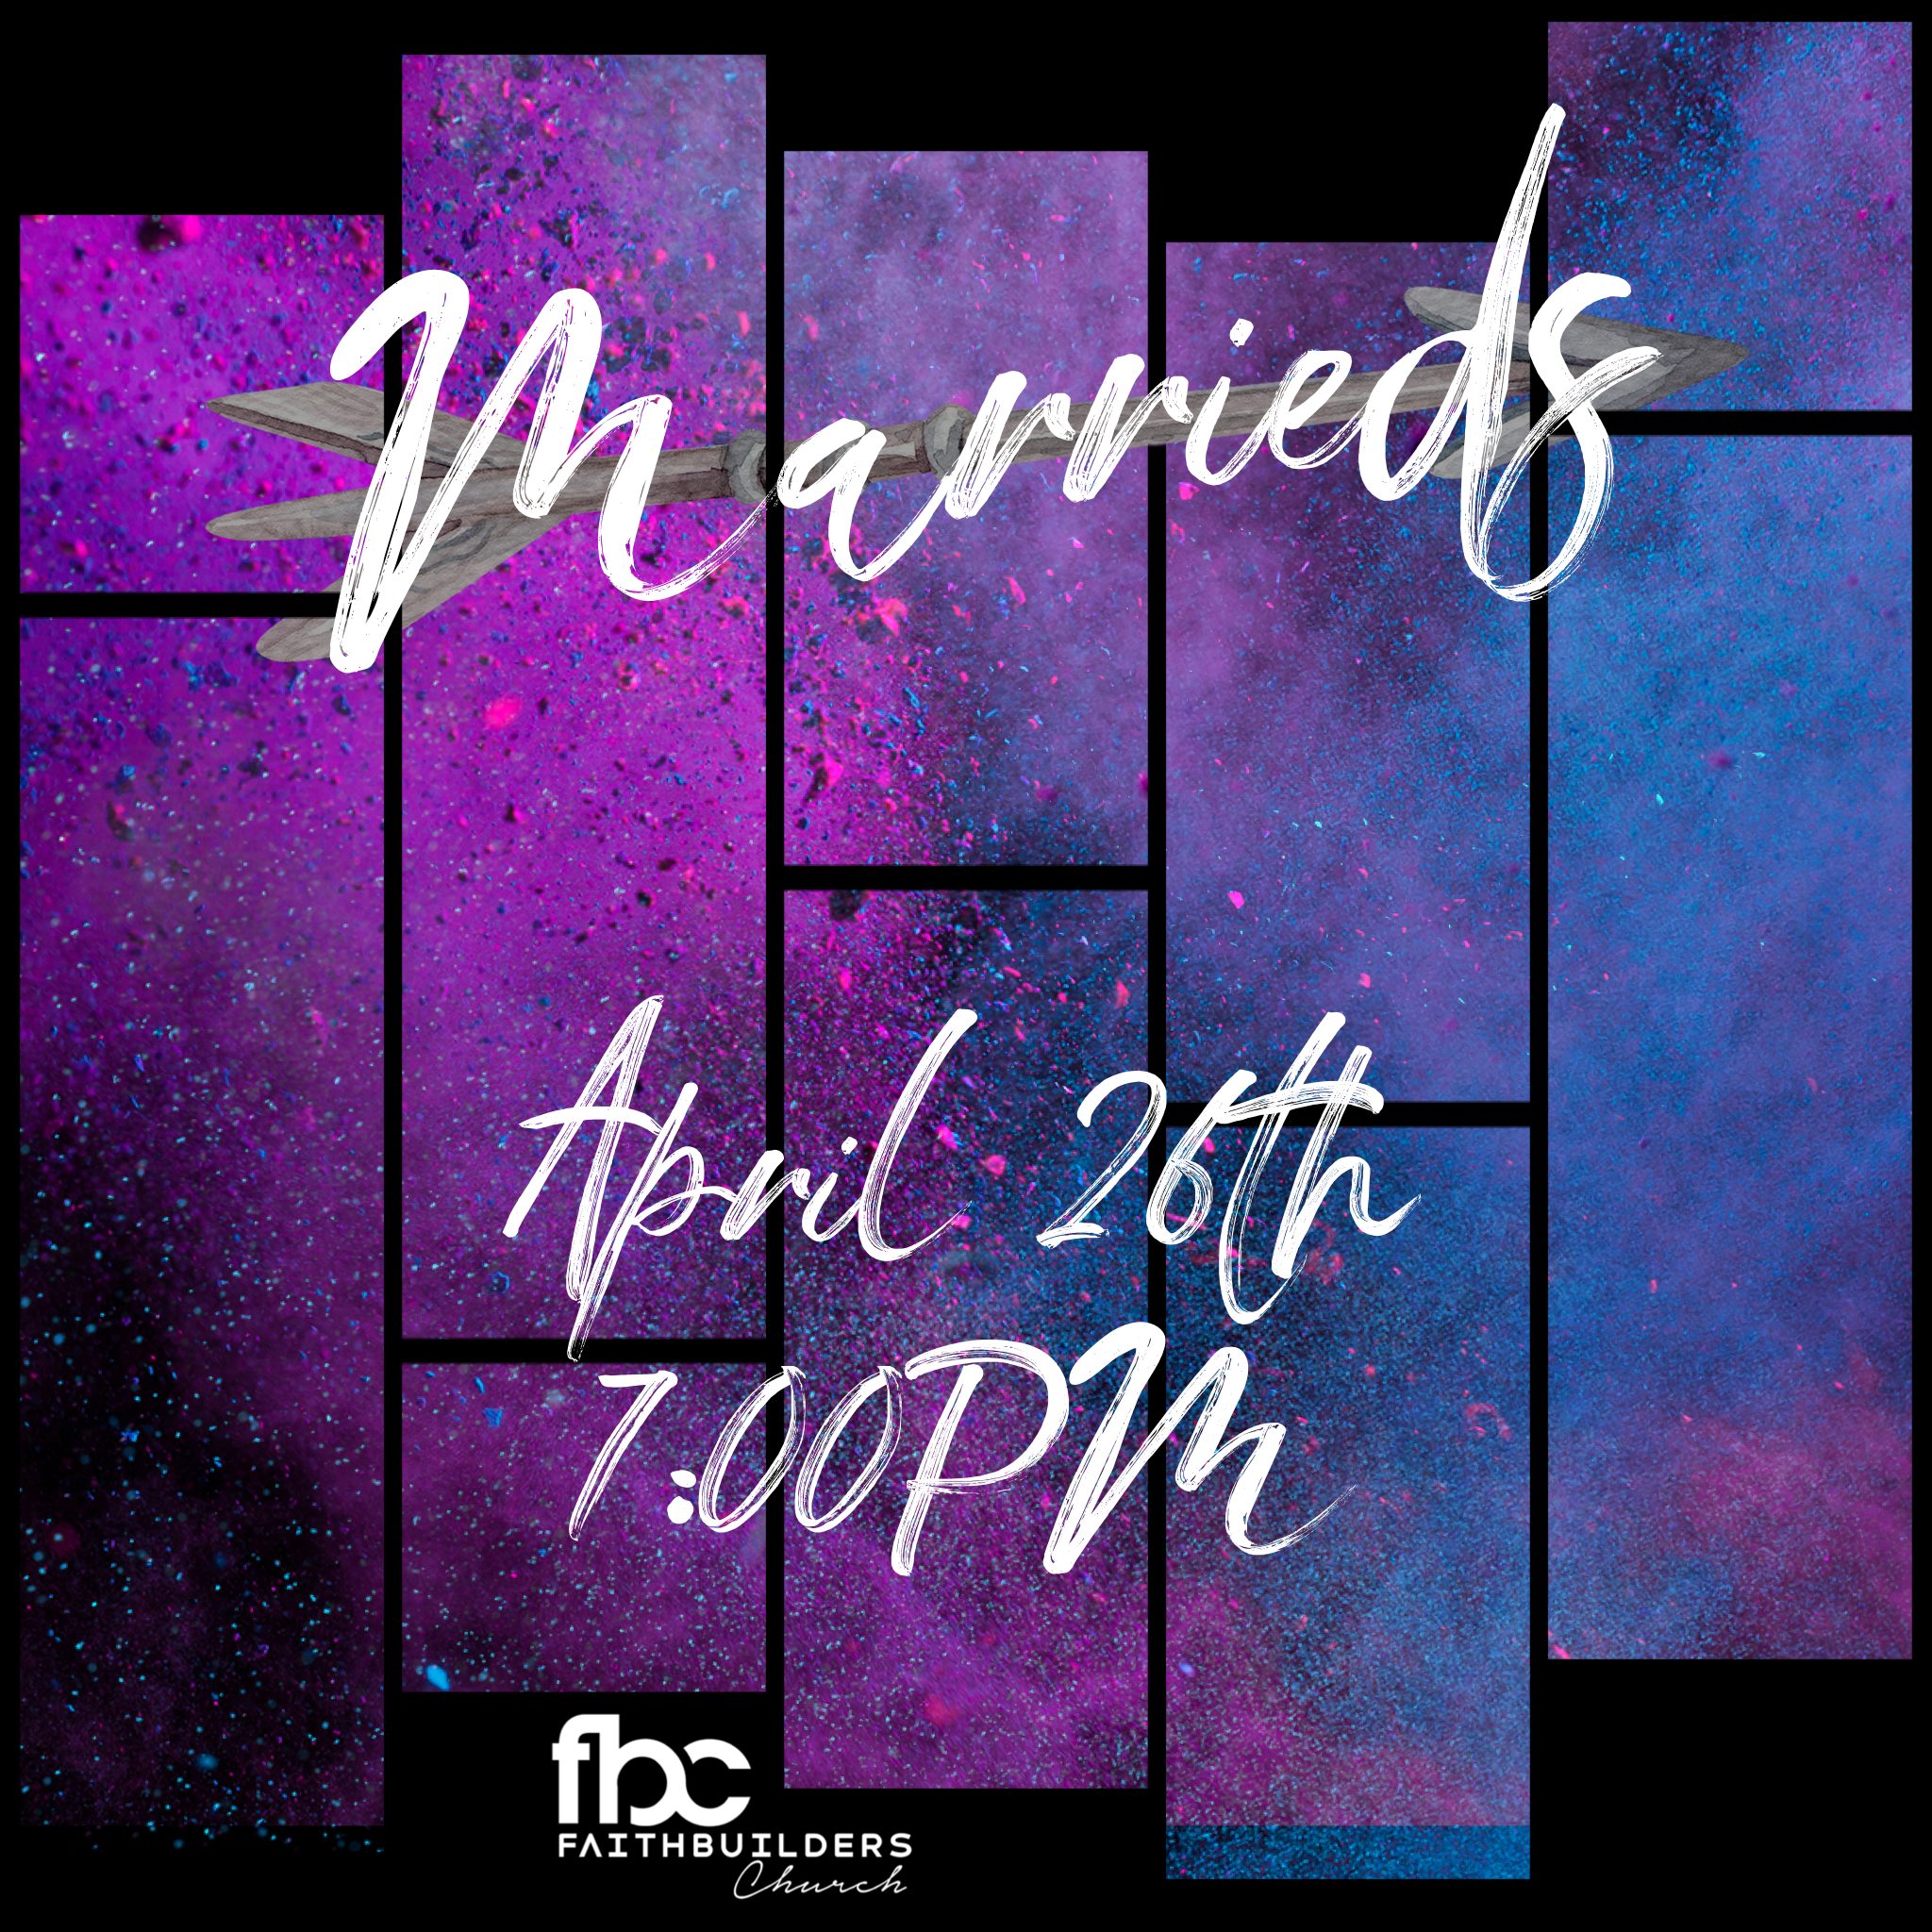 Marrieds Night! - Friday, April 26th 7:00 pmPastor Matt & Ginger McLamb's Home5541 West Saguaro DriveGlendale, AZ 85304